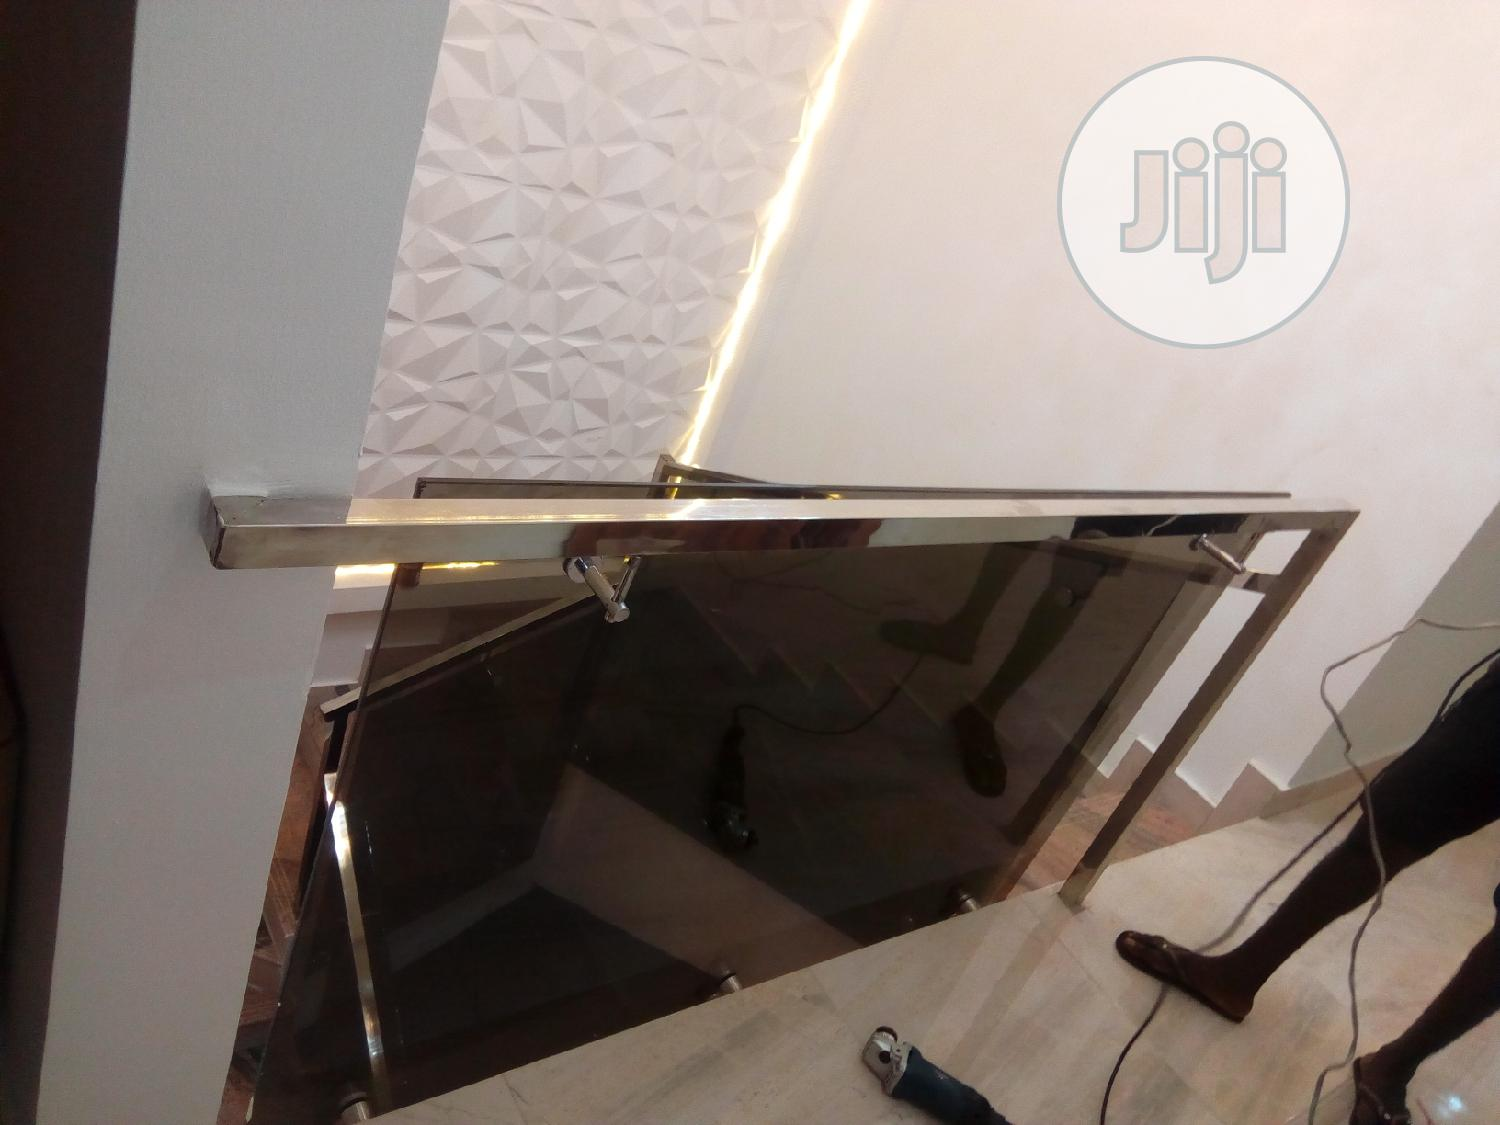 Archive: Framesless Glass & Stainless Steel Handrails & Balusters